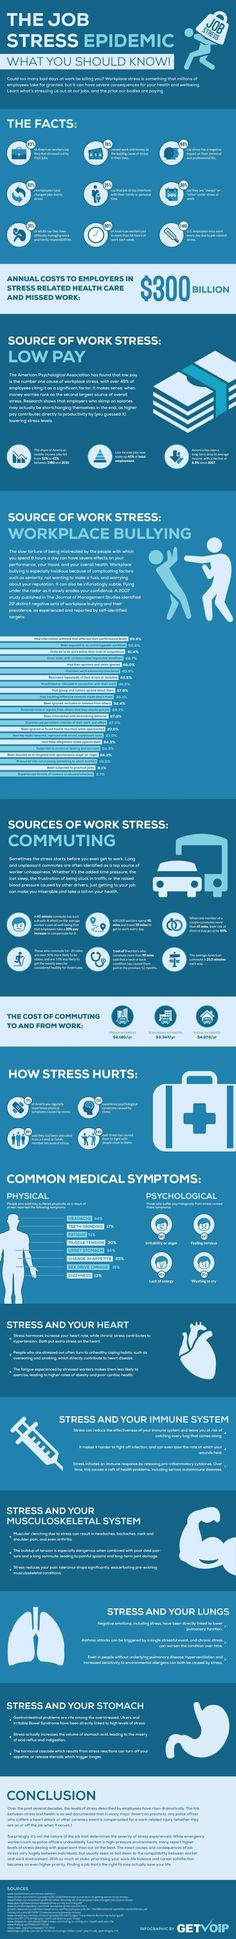 job_stress_epidemic- another reason why you should work towards finding the right job!